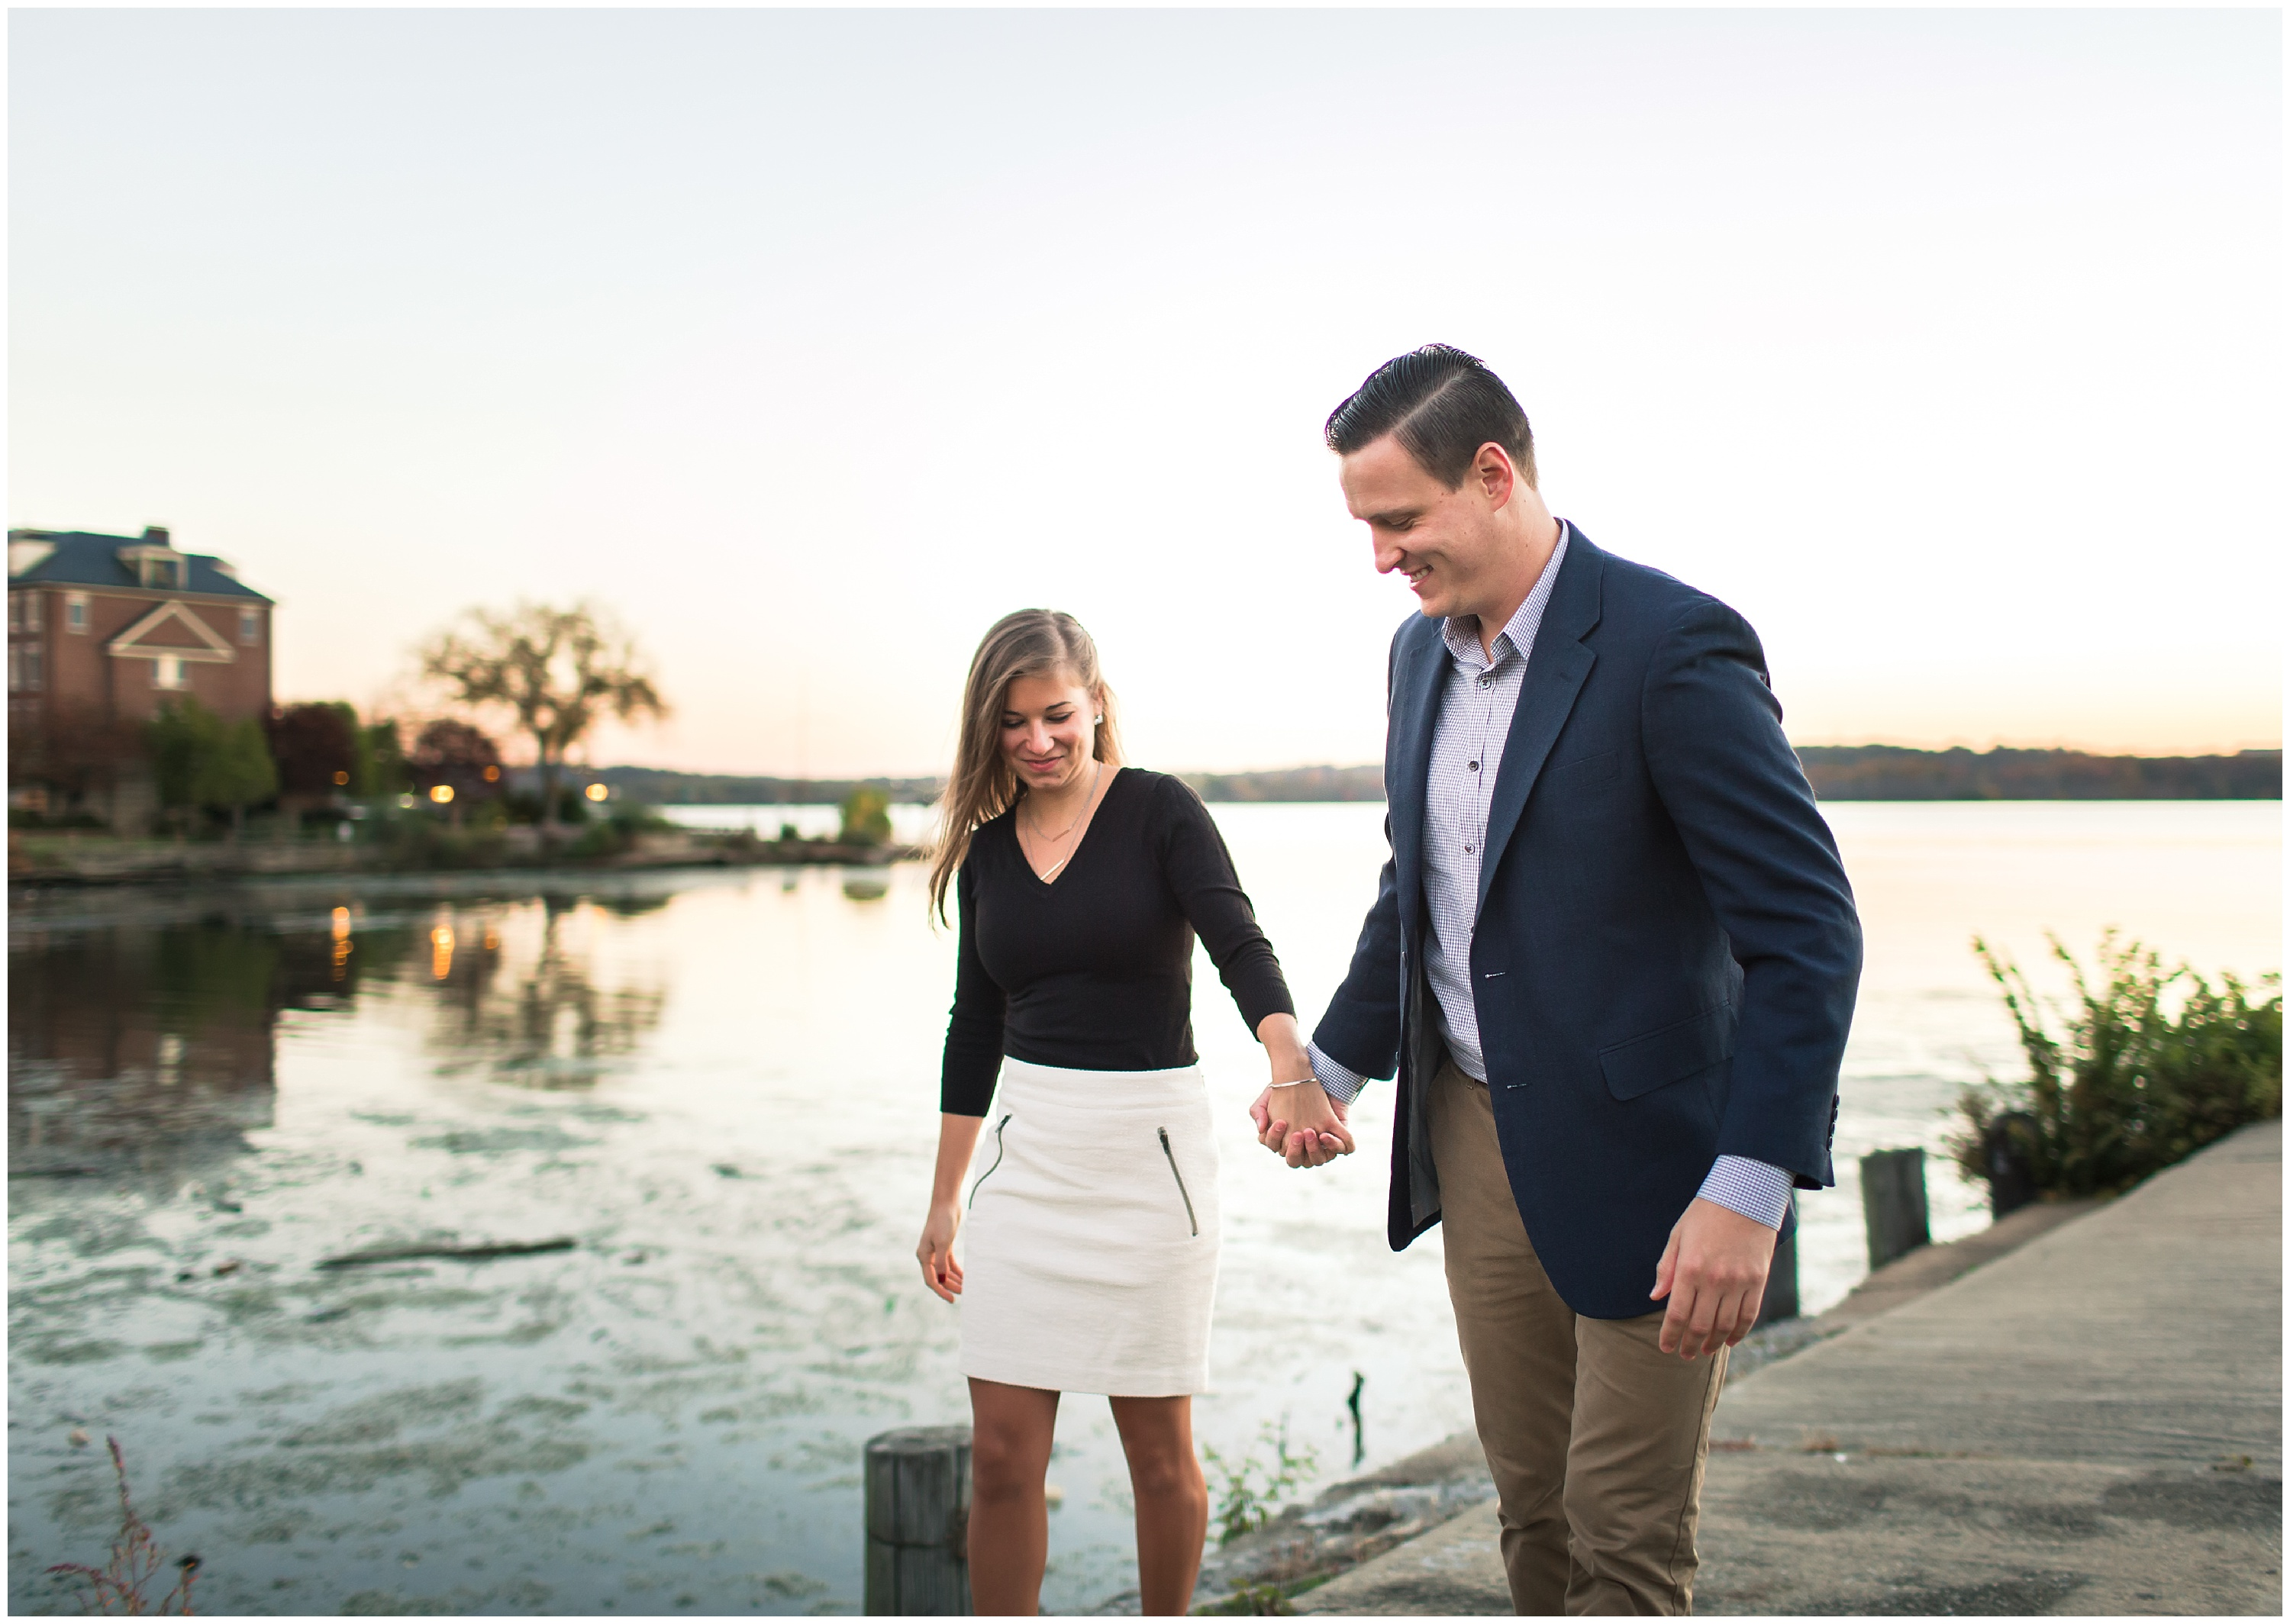 Sofia-John-Waterfront-Alexandria-Wilkes-Tunnel-DC-Engagement00006